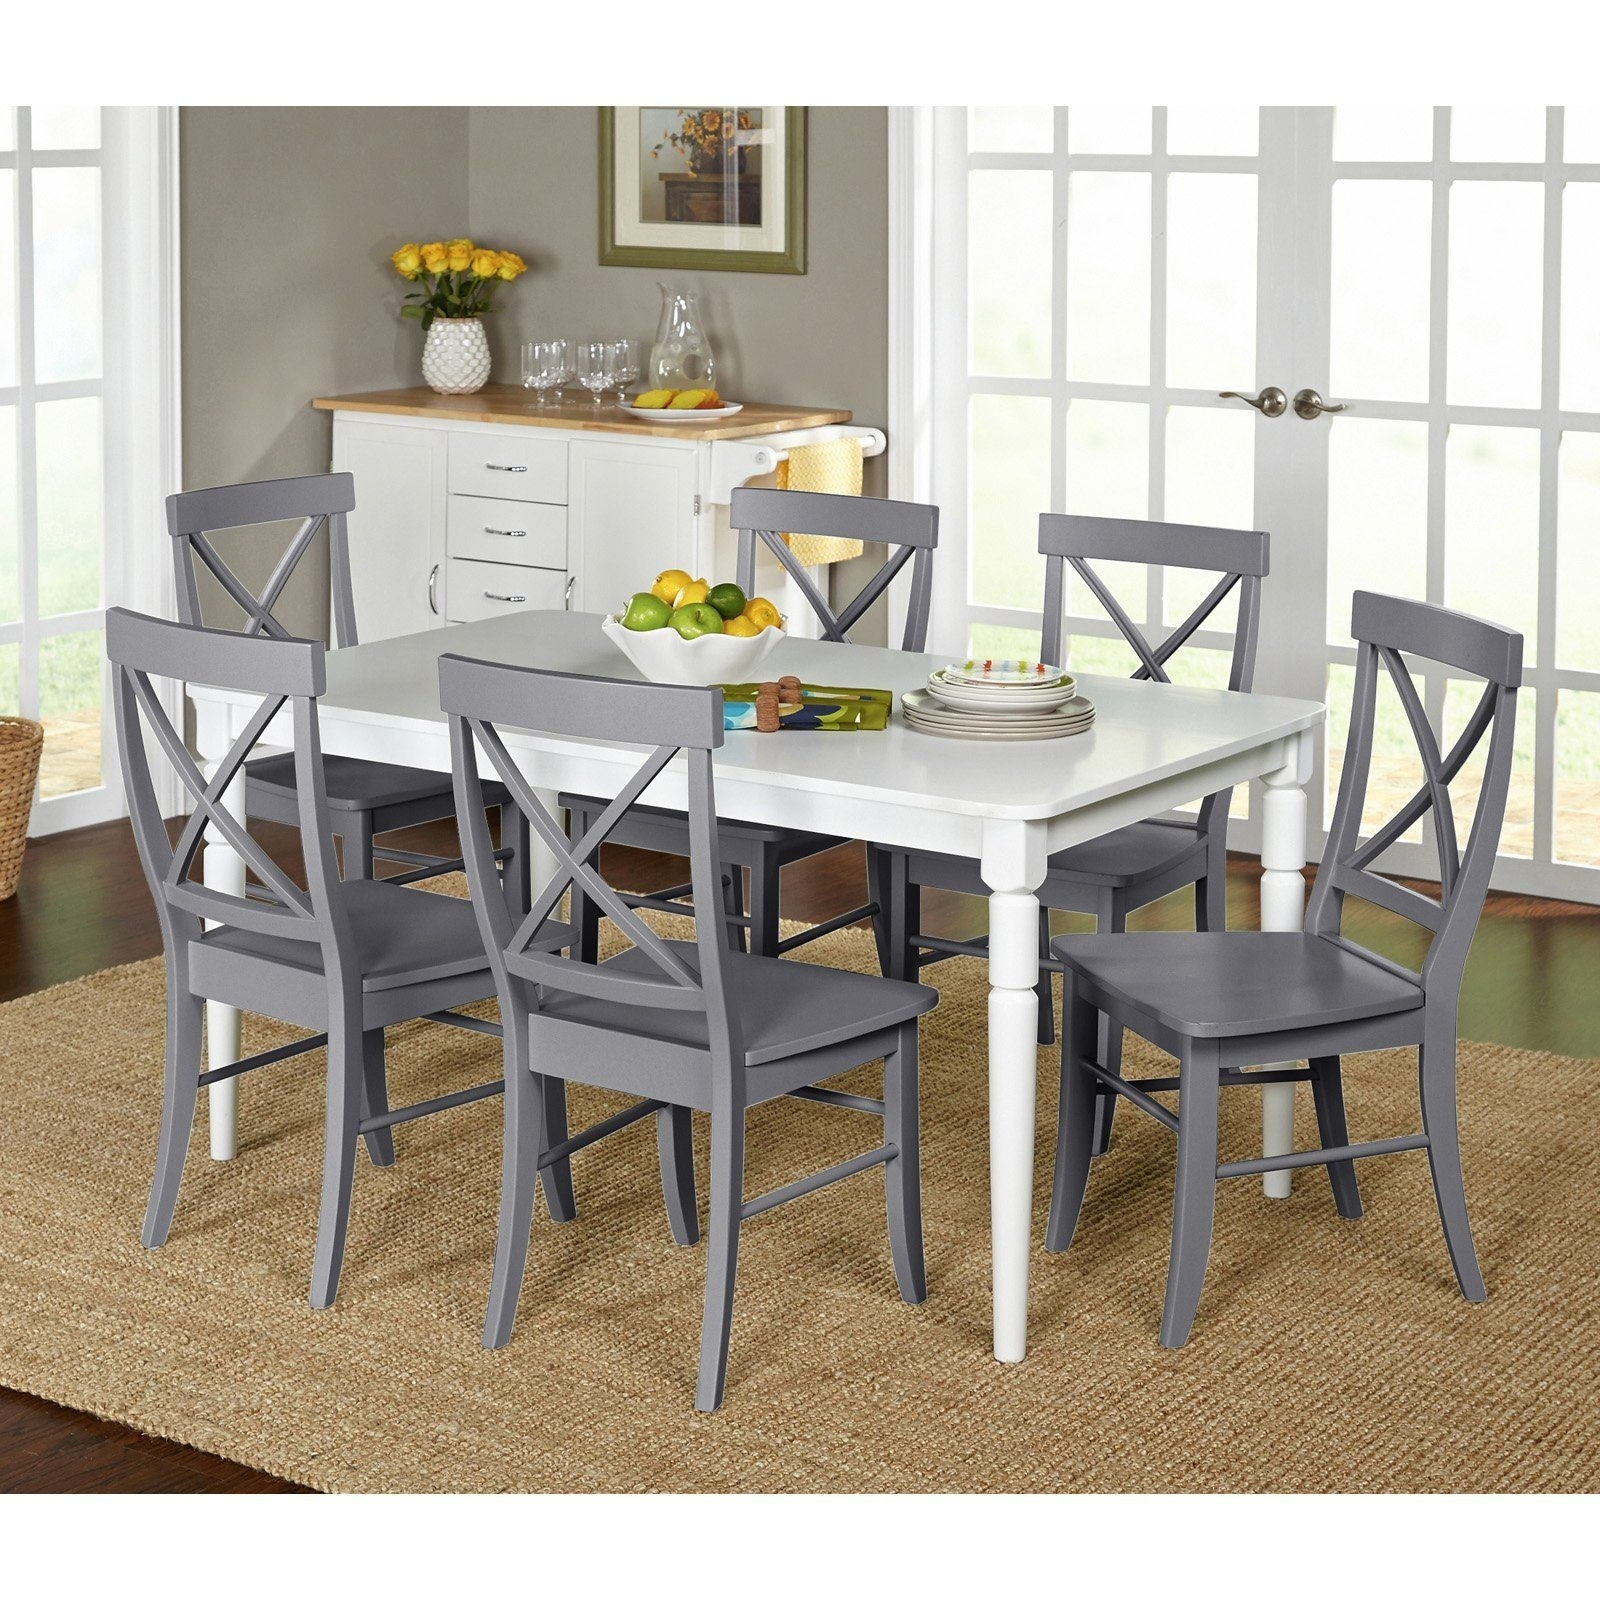 Target Marketing Systems Albury 7 Piece Dining Table Set – 75127Gry With Regard To Most Recent Market 7 Piece Dining Sets With Side Chairs (Photo 1 of 20)